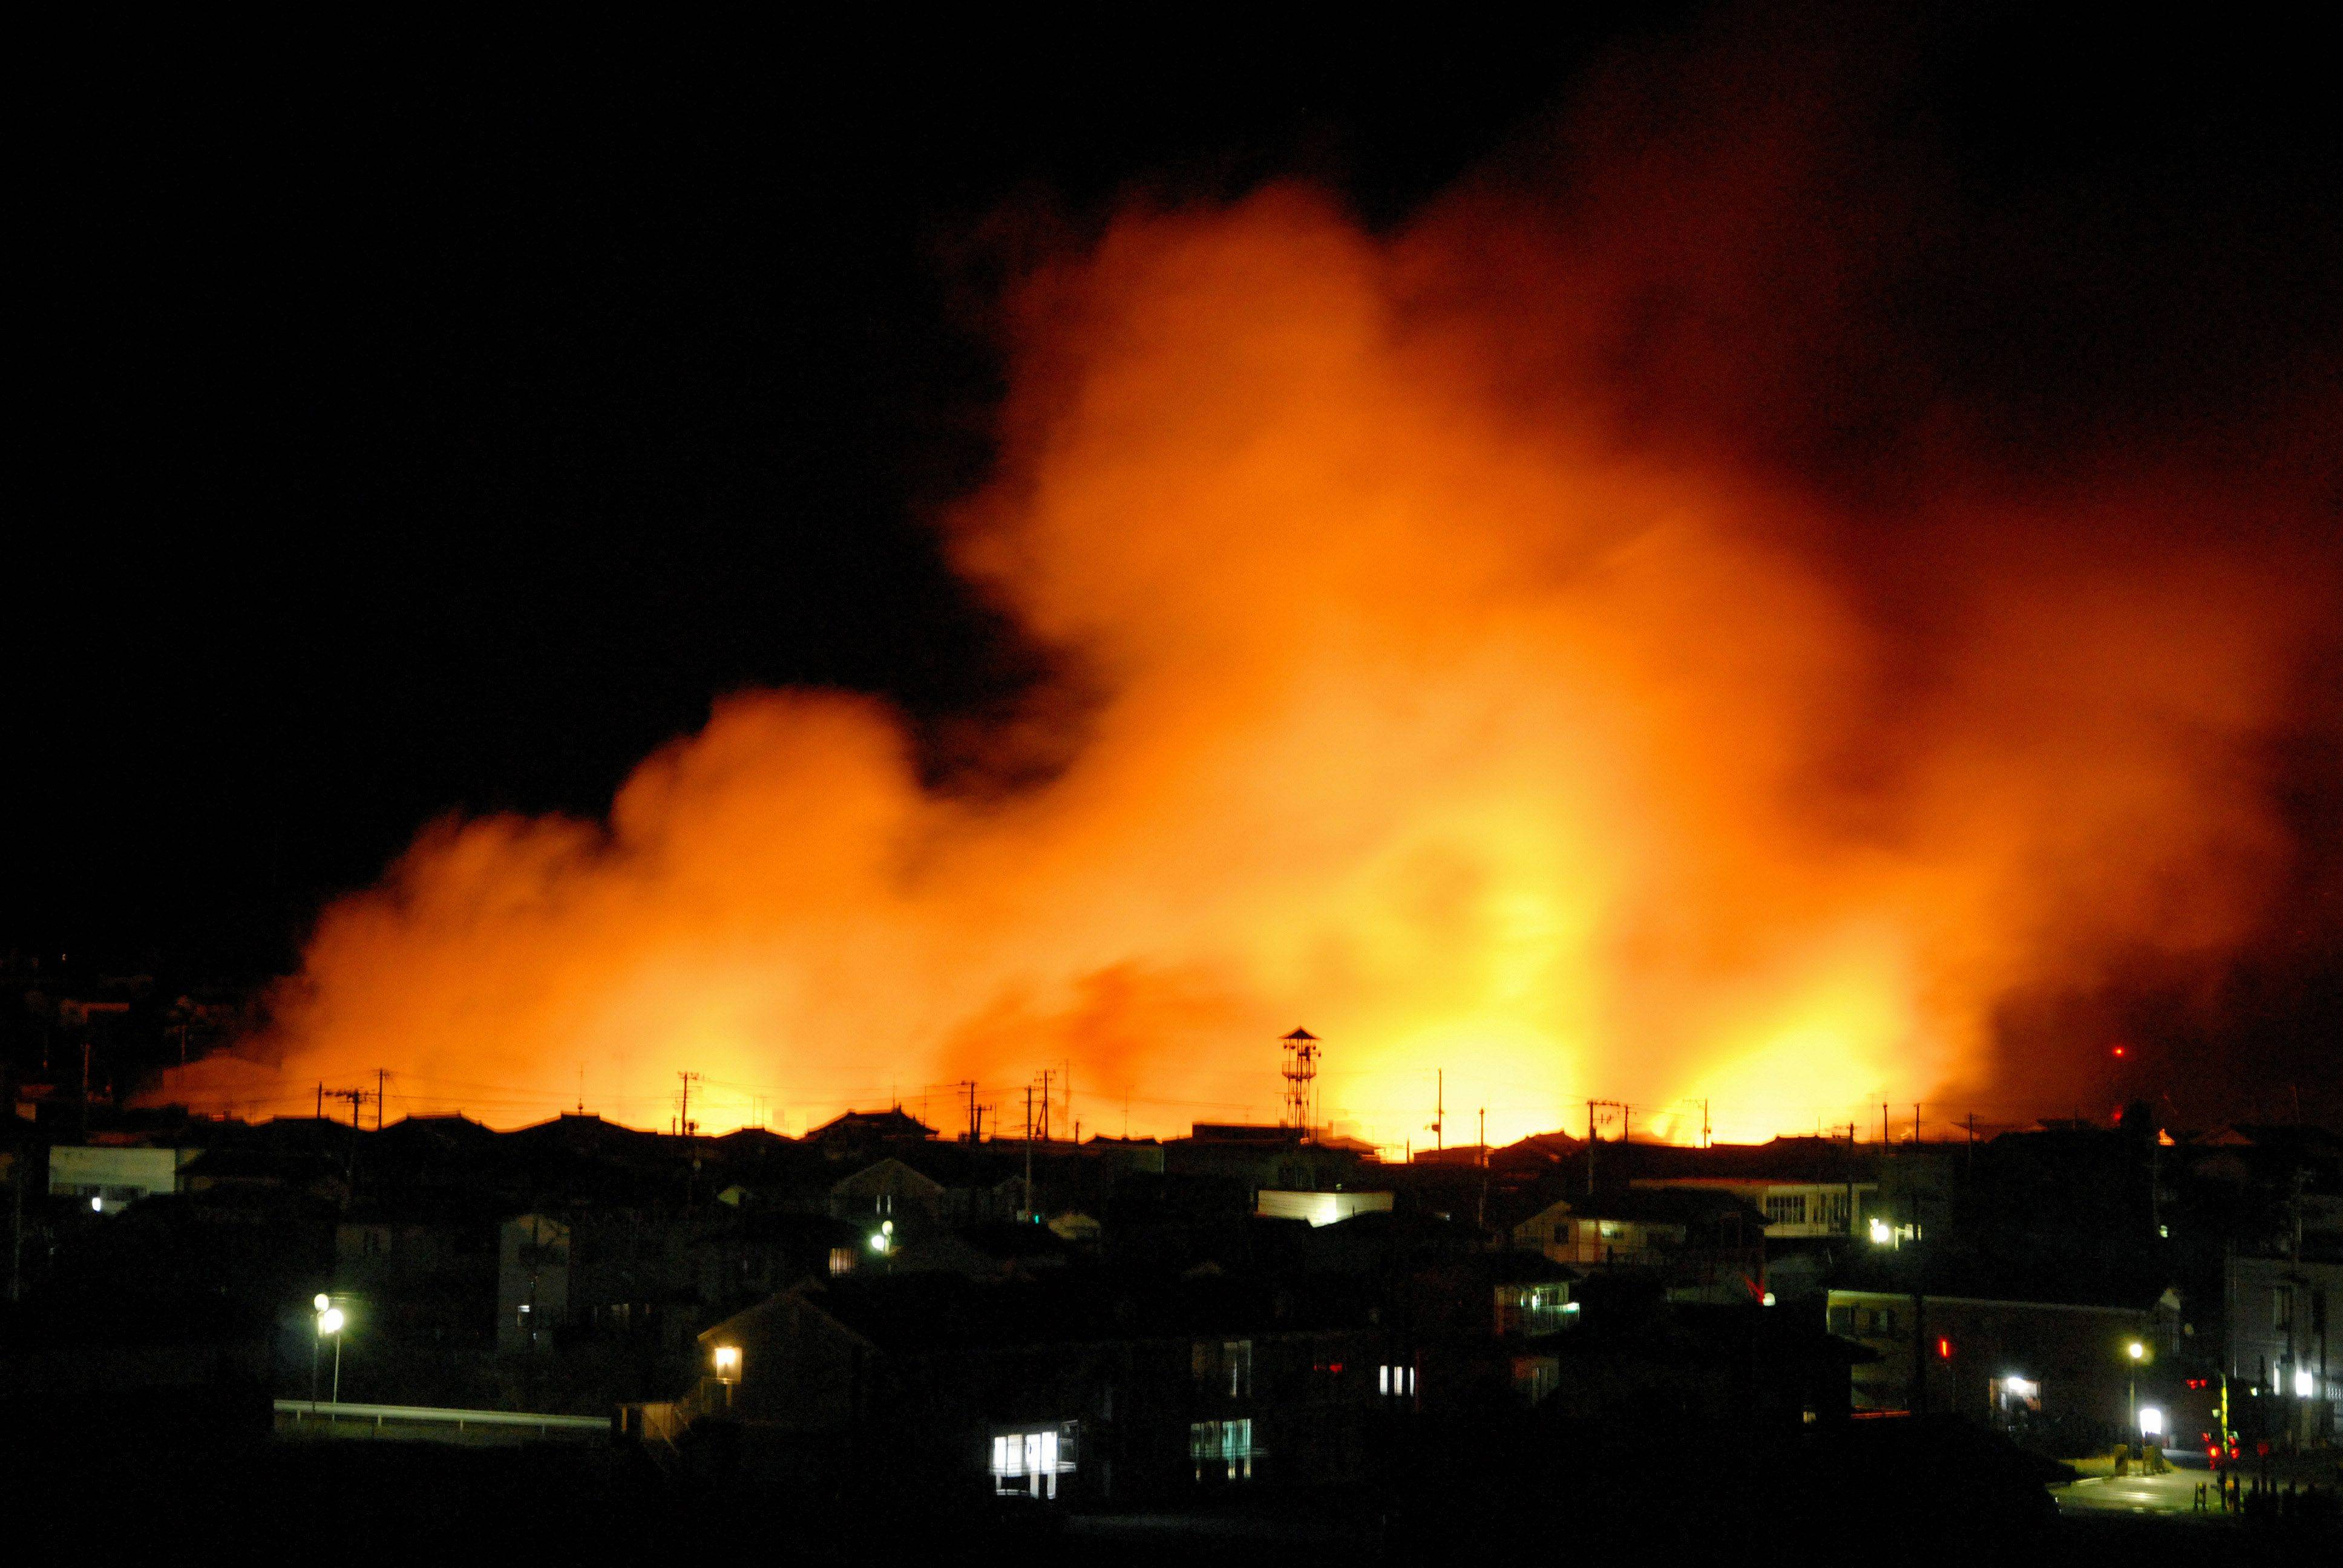 Fire flames raise from a coastal area after a powerful earthquake in Iwaki city, Fukushima prefecture (state), Japan.